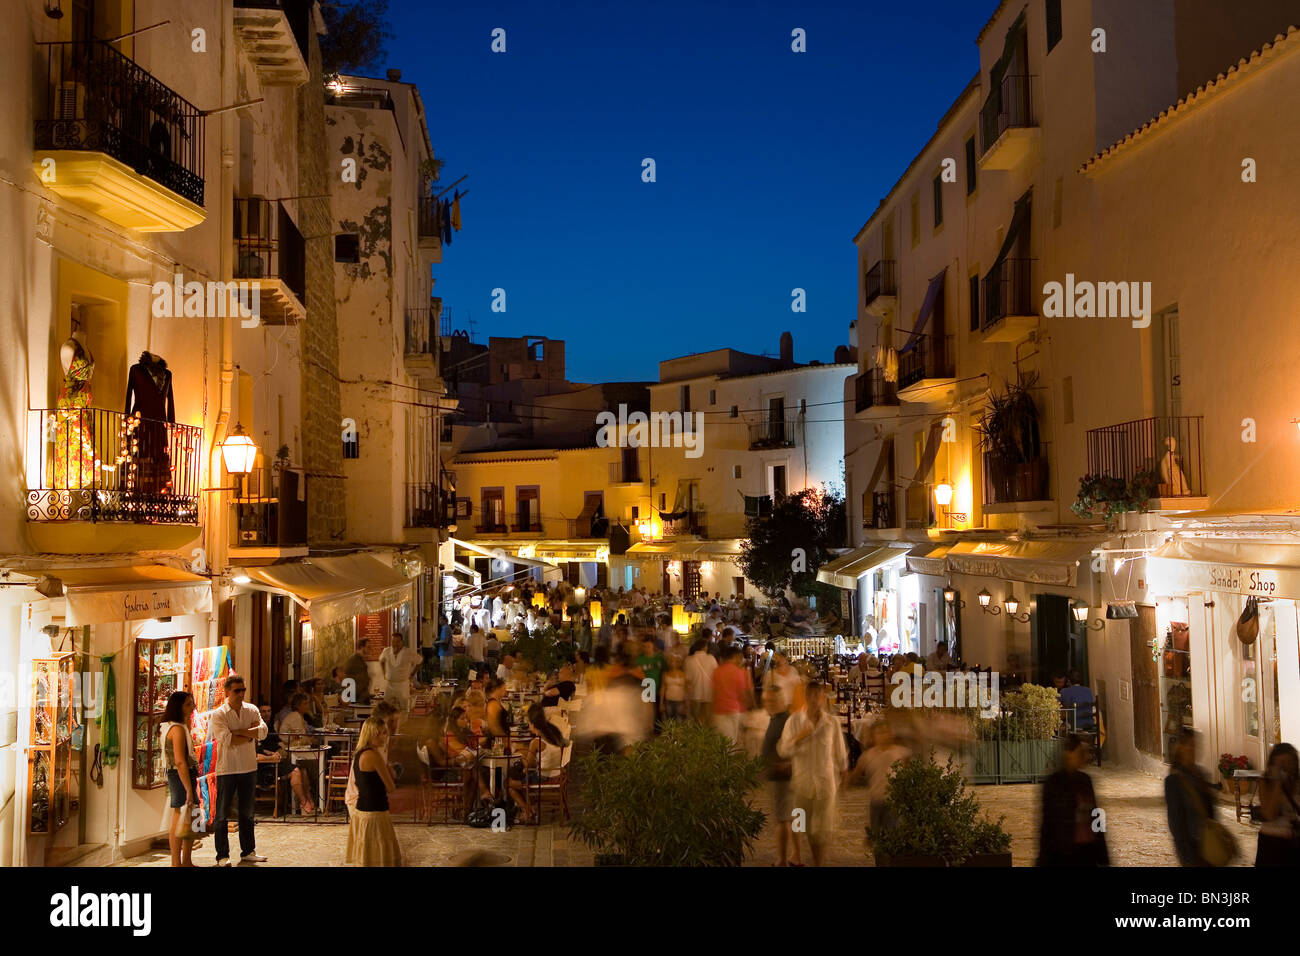 shops and restaurants in the old town of ibiza city ibiza spain stock photo 30198359 alamy. Black Bedroom Furniture Sets. Home Design Ideas